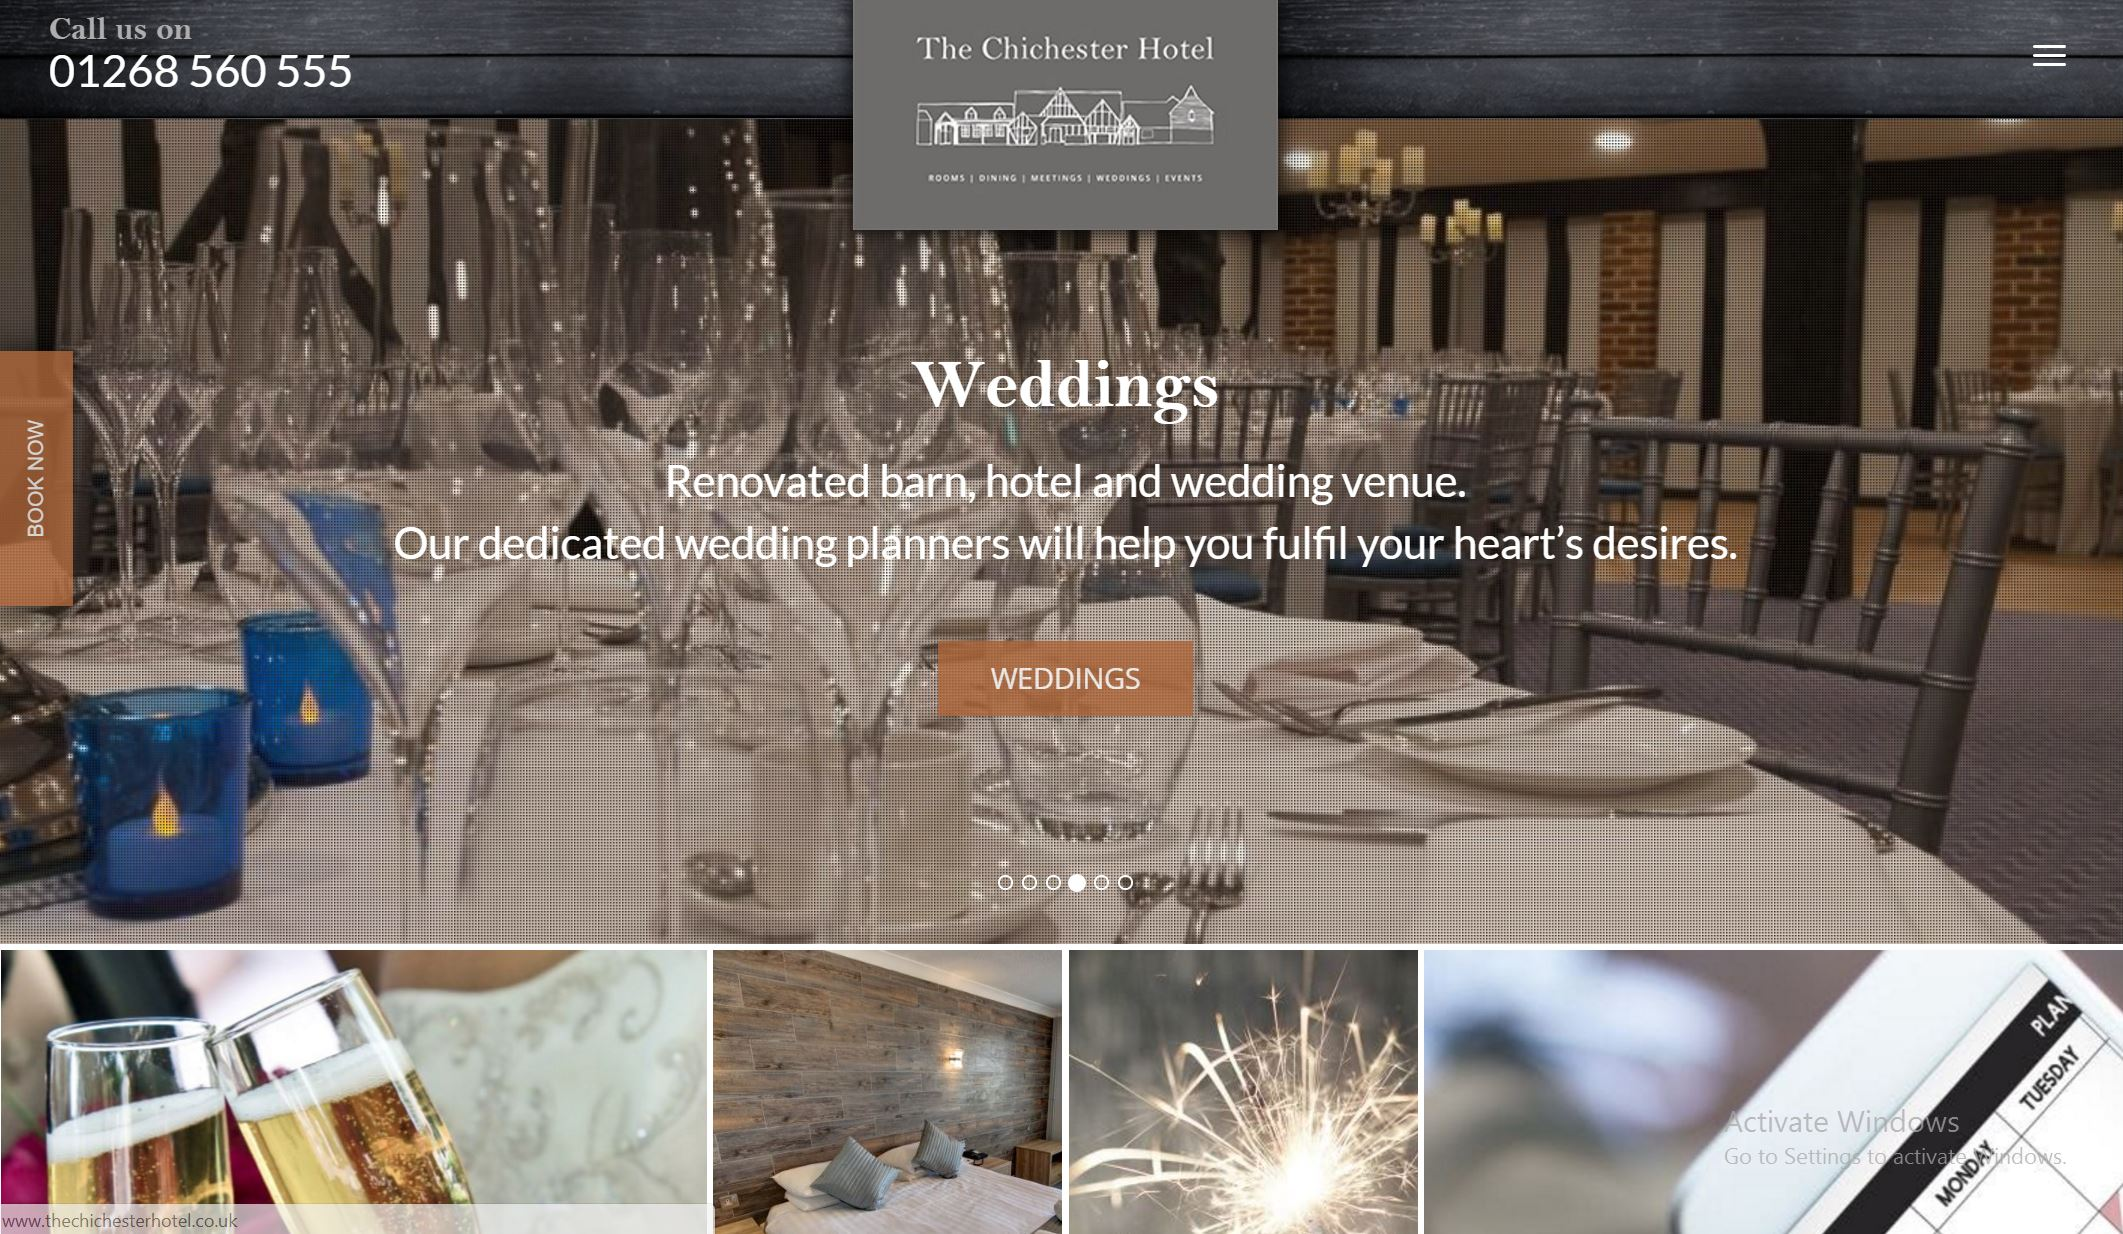 Website, Hotel and Venue